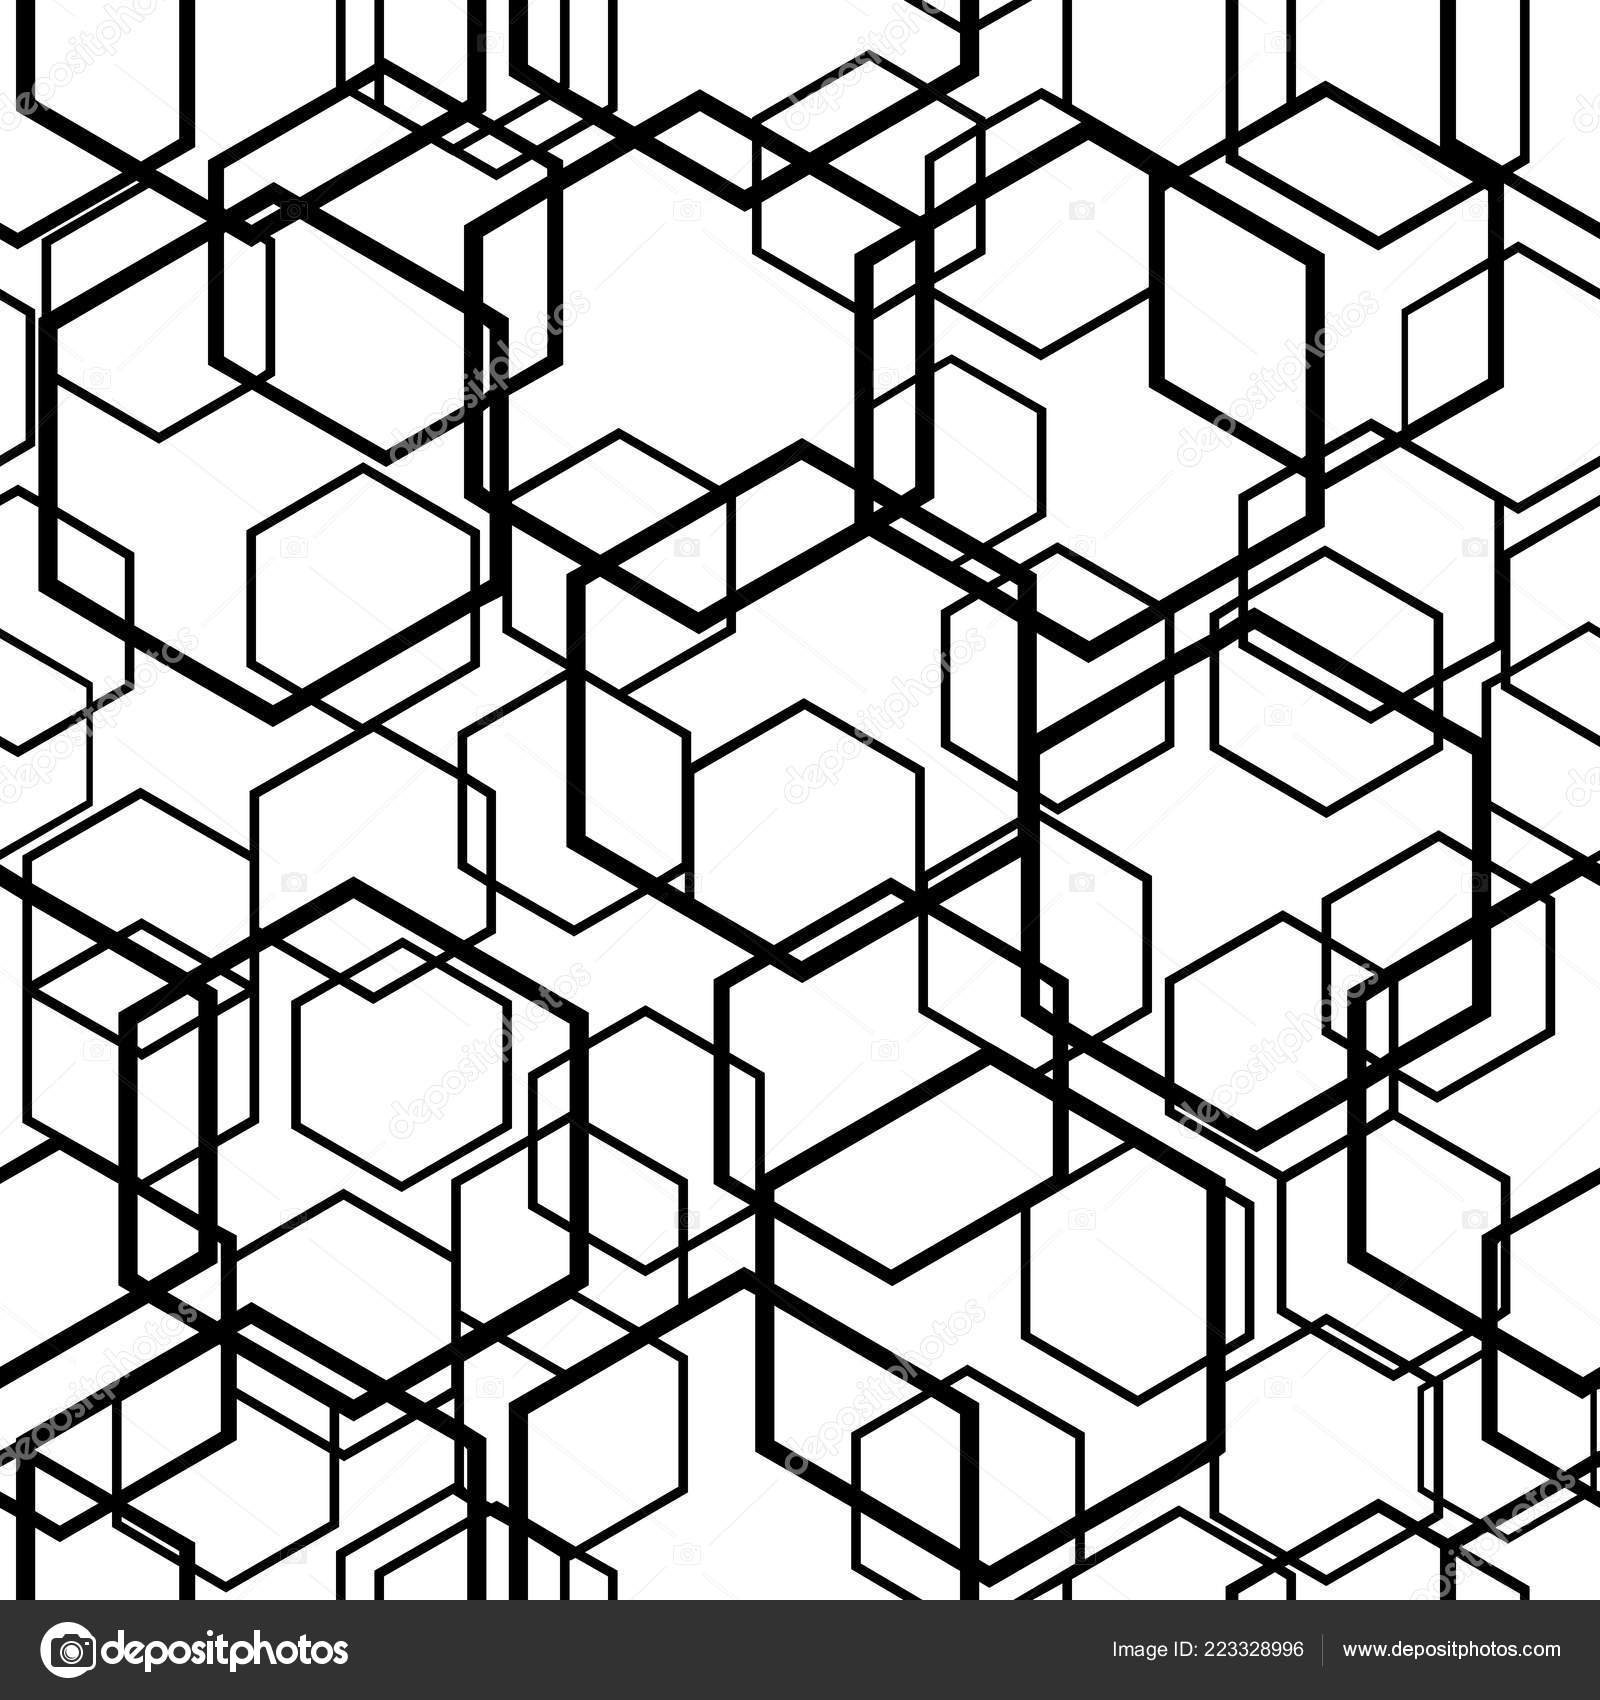 Hexagon Seamless Pattern Vector Background Black White Color Stock Vector C Aygunaliyeva 223328996